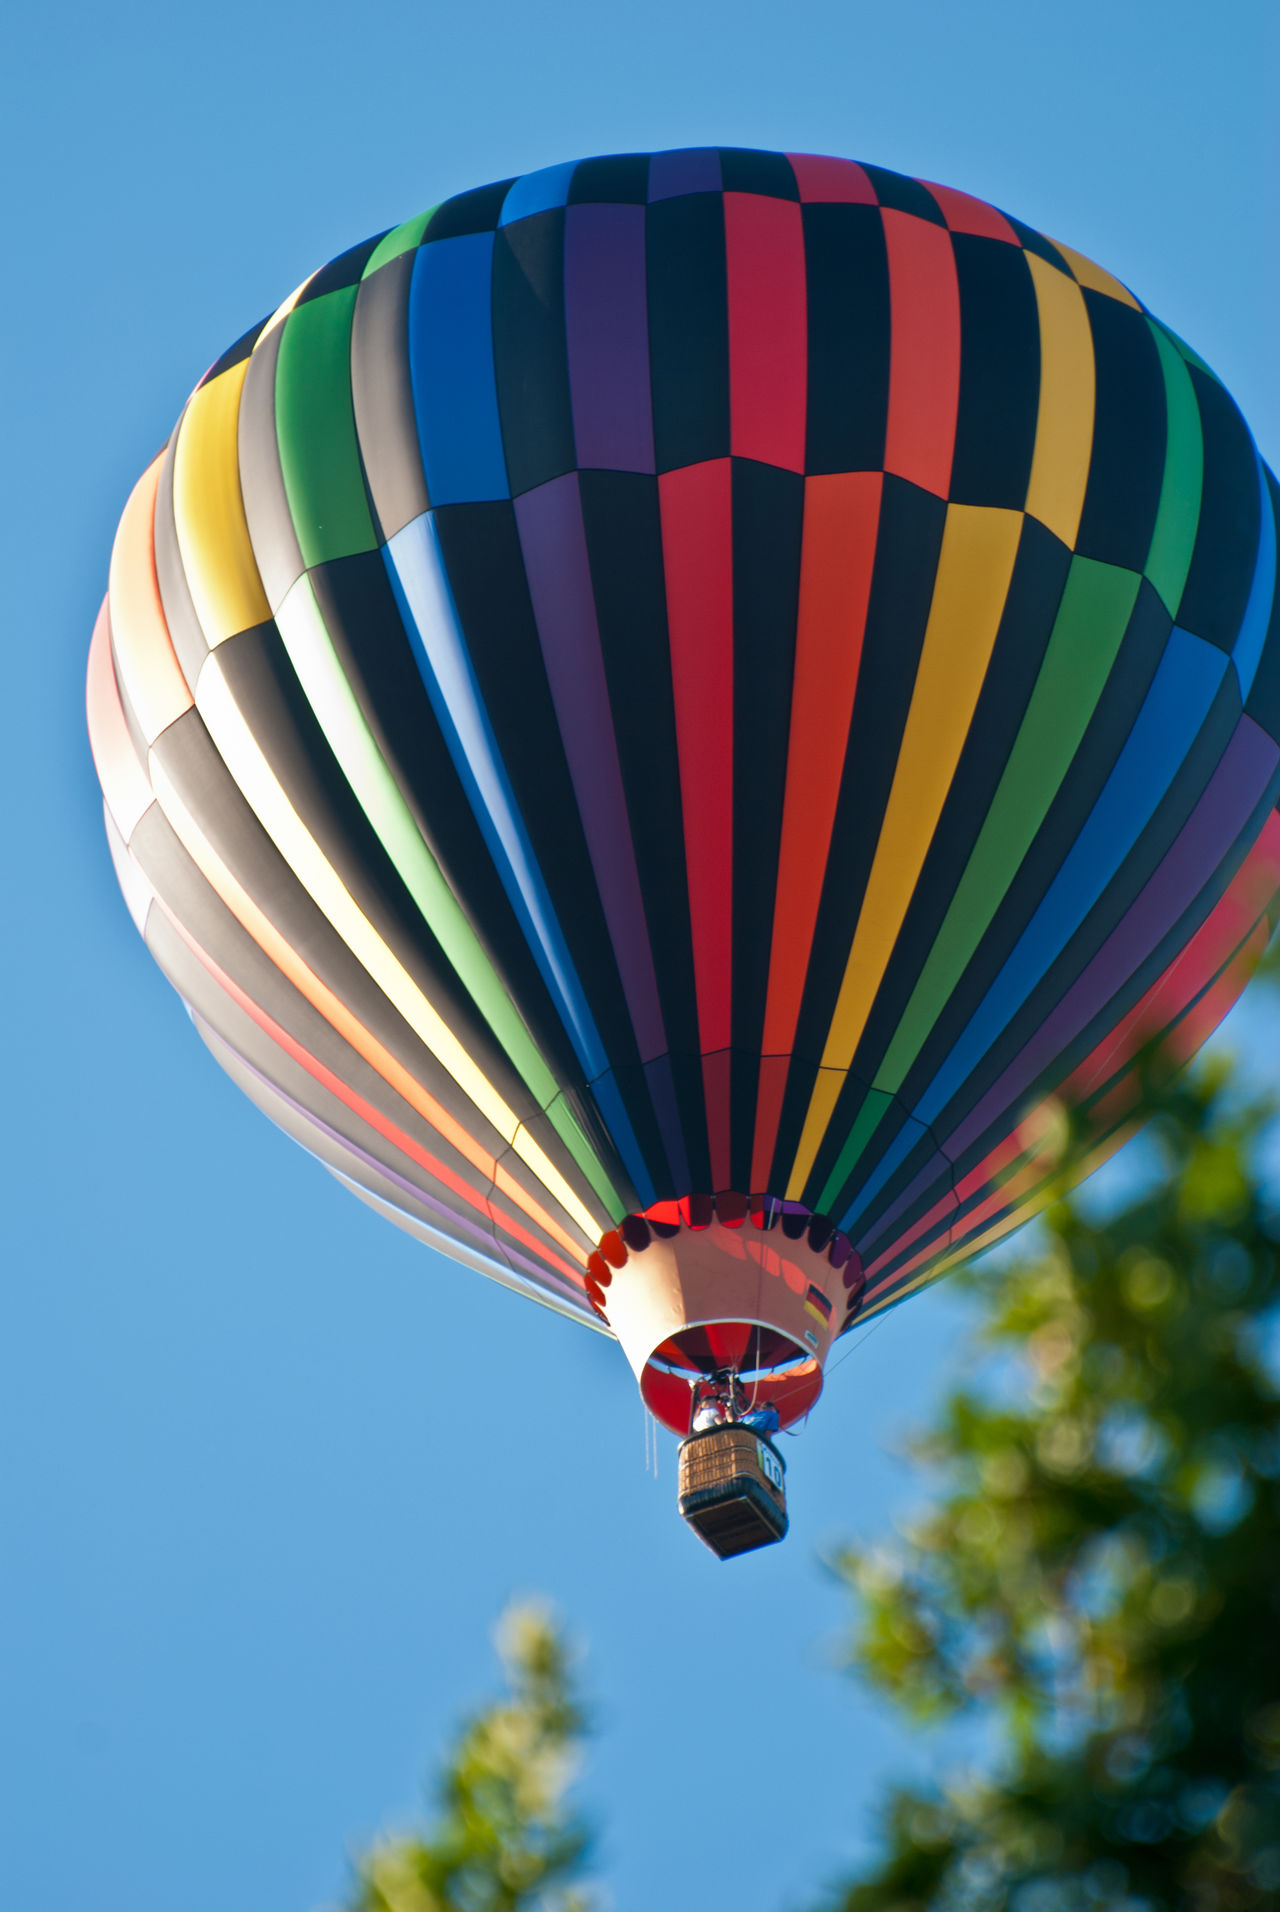 Hot air baloon rising to the sky. Above Adventure Ballooning Festival Baloon Baloon Festival Balooning Blue Clear Sky Colorful Coloured Day Flying Hot Air Balloon Hot-air Balloon Hot-air Balloon Ride In The Air Looking Up Multi Colored Outdoors Sky Summer Transportation Travel Up Yellow